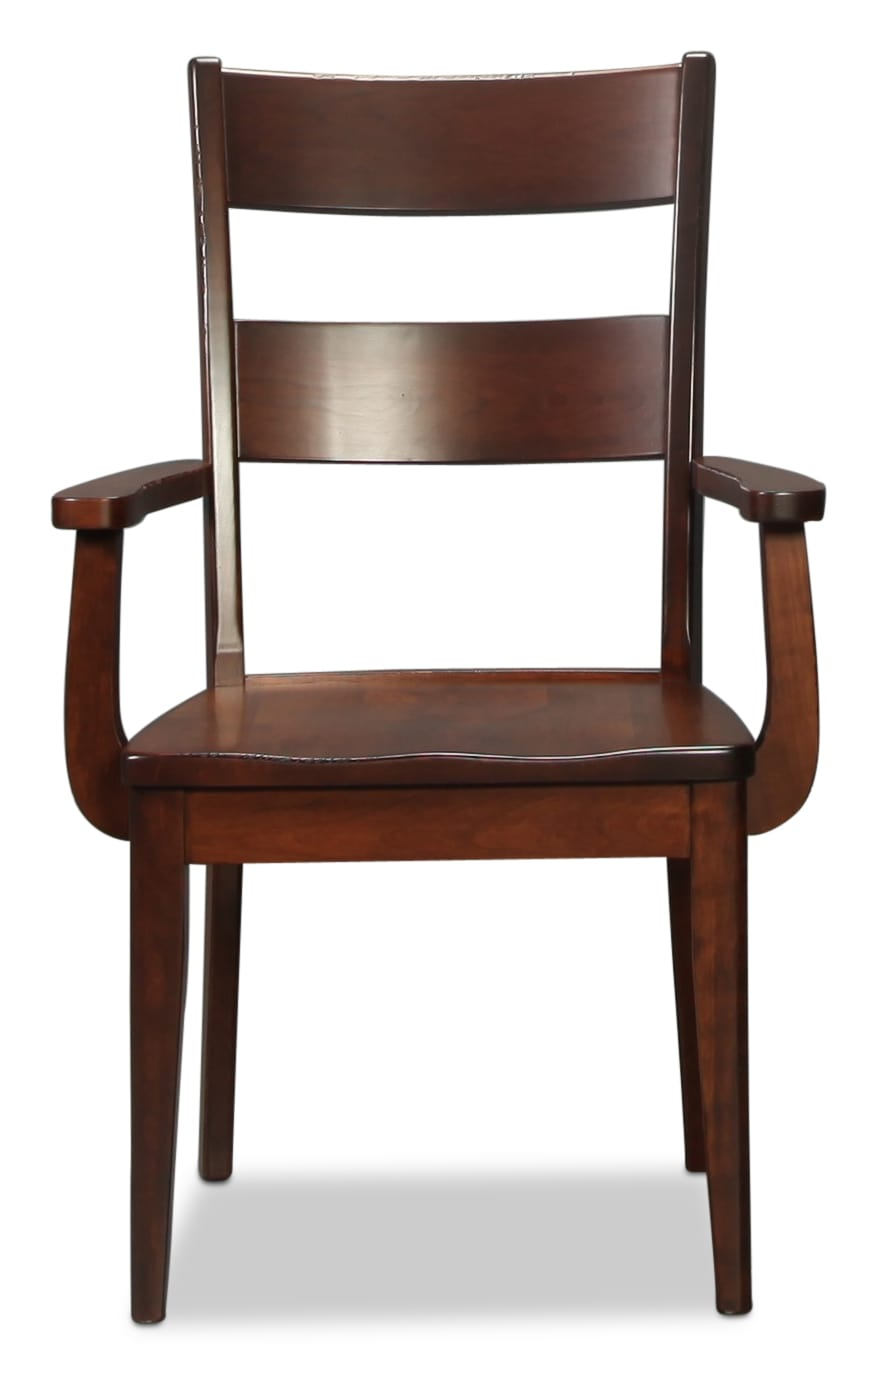 Ligonier Arm Chair